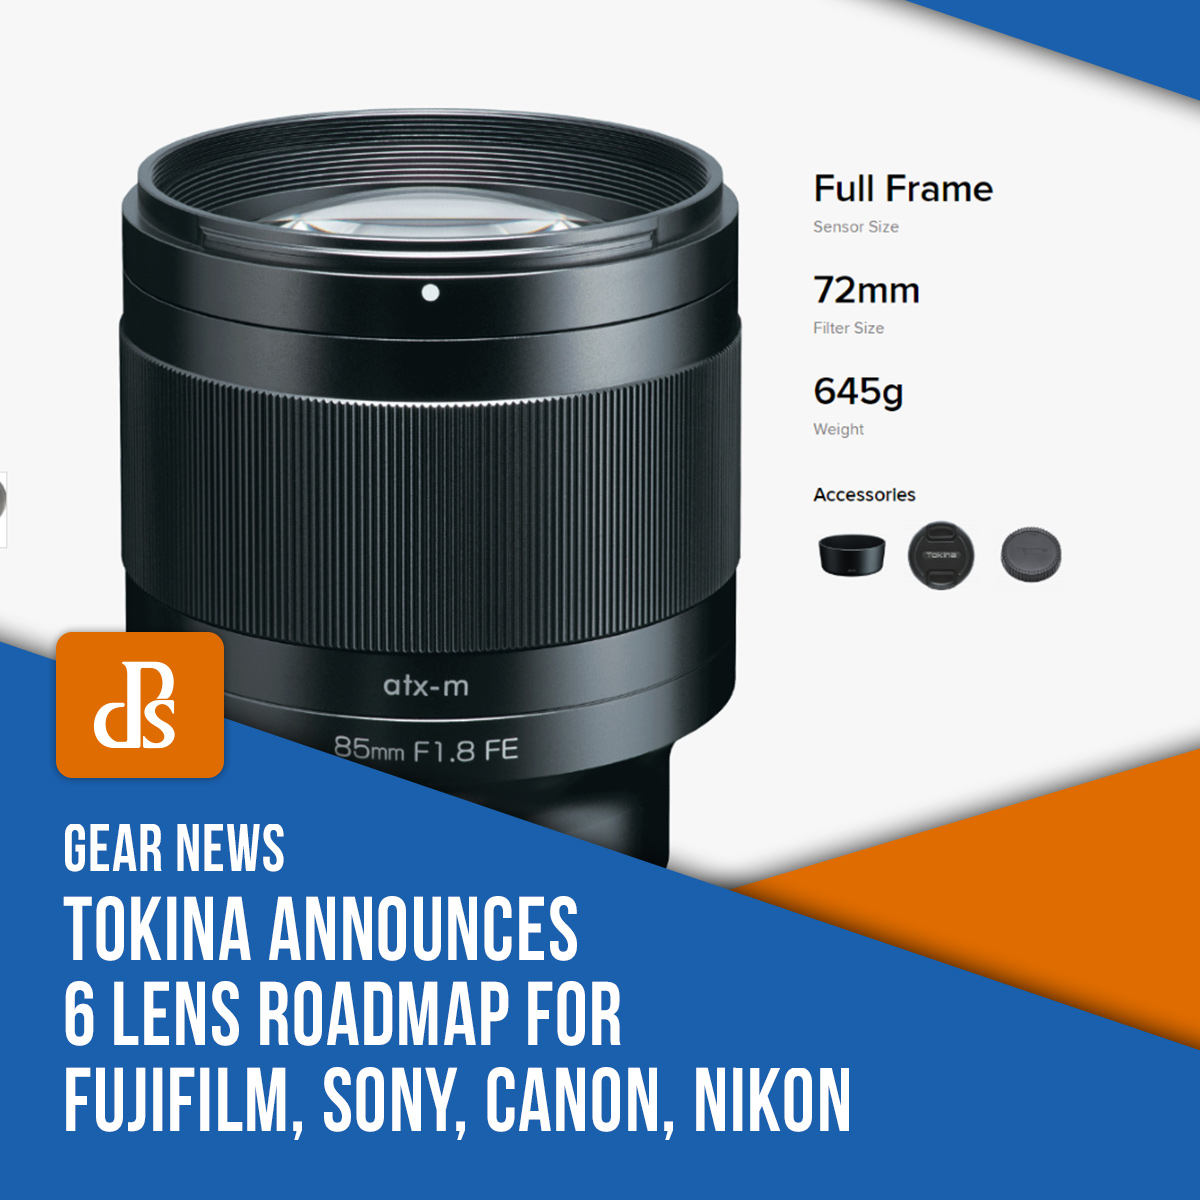 Gear news - Tokina Lenses roadmap 2020